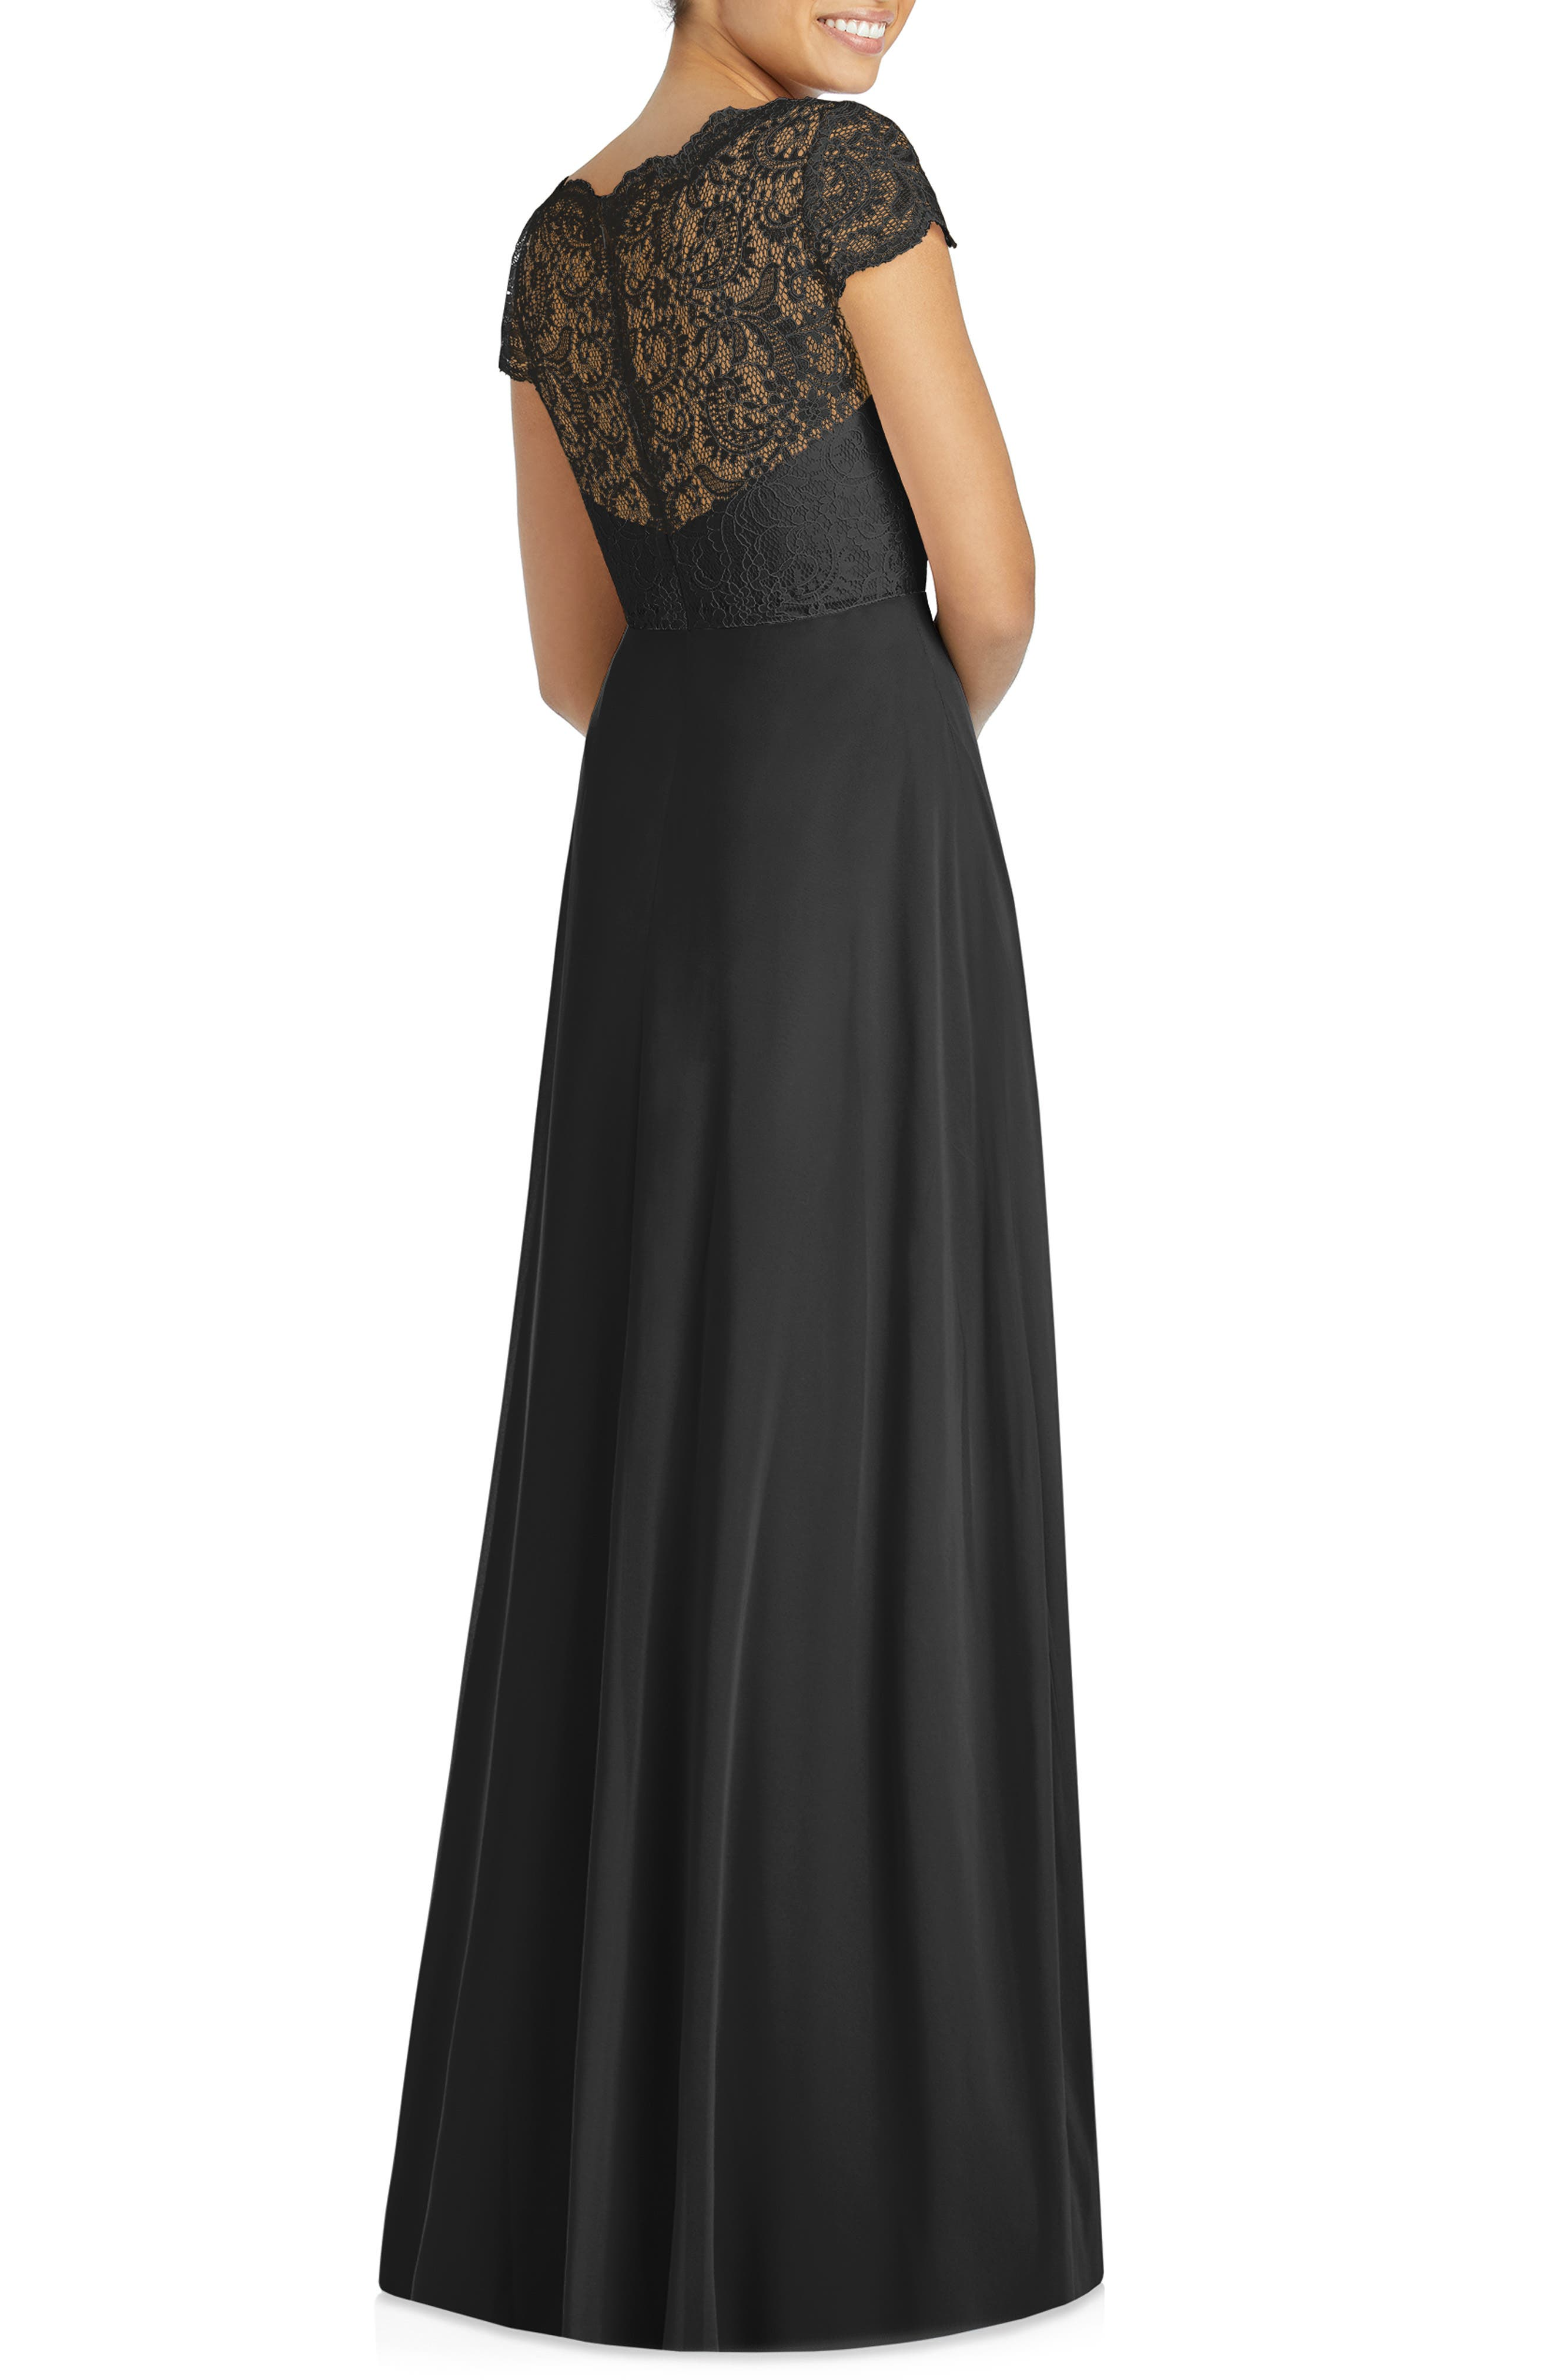 DESSY COLLECTION, Cap Sleeve Lace & Chiffon Gown, Alternate thumbnail 2, color, BLACK